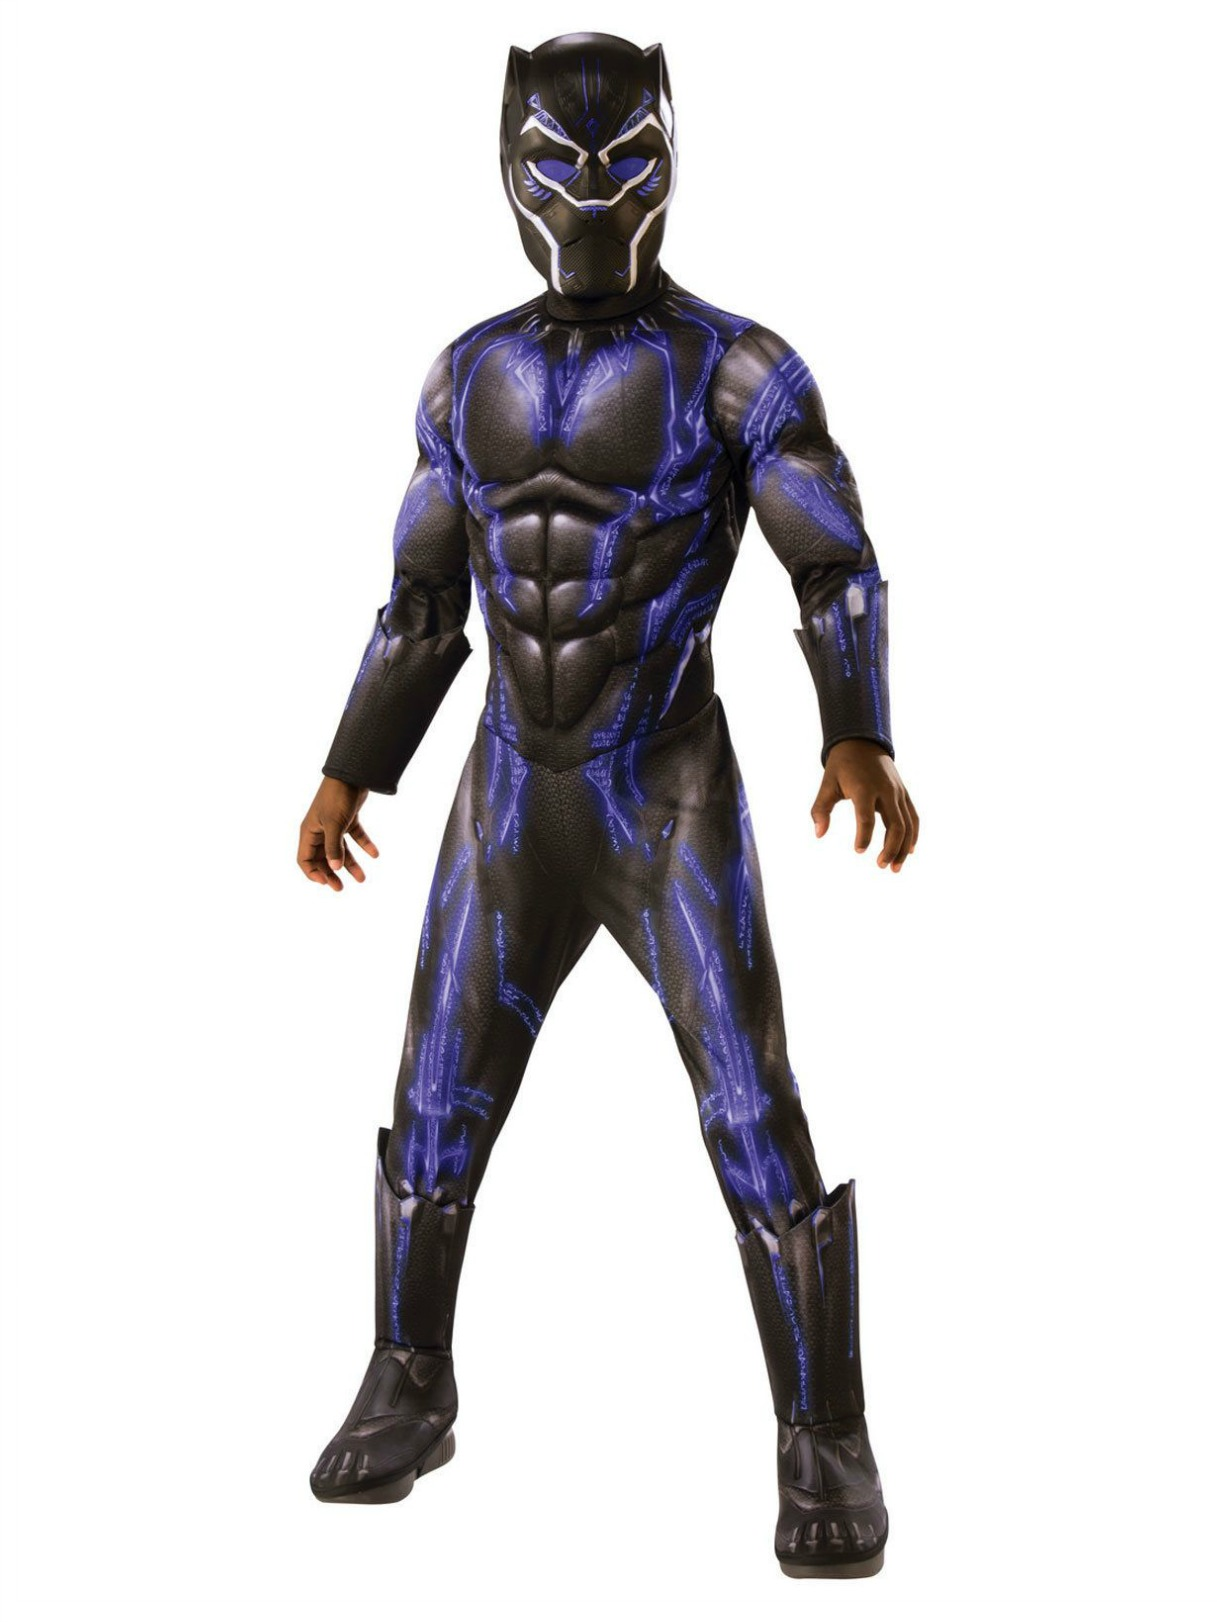 Marvel Black Panther Movie Deluxe Black Panther Battle Suit Costume